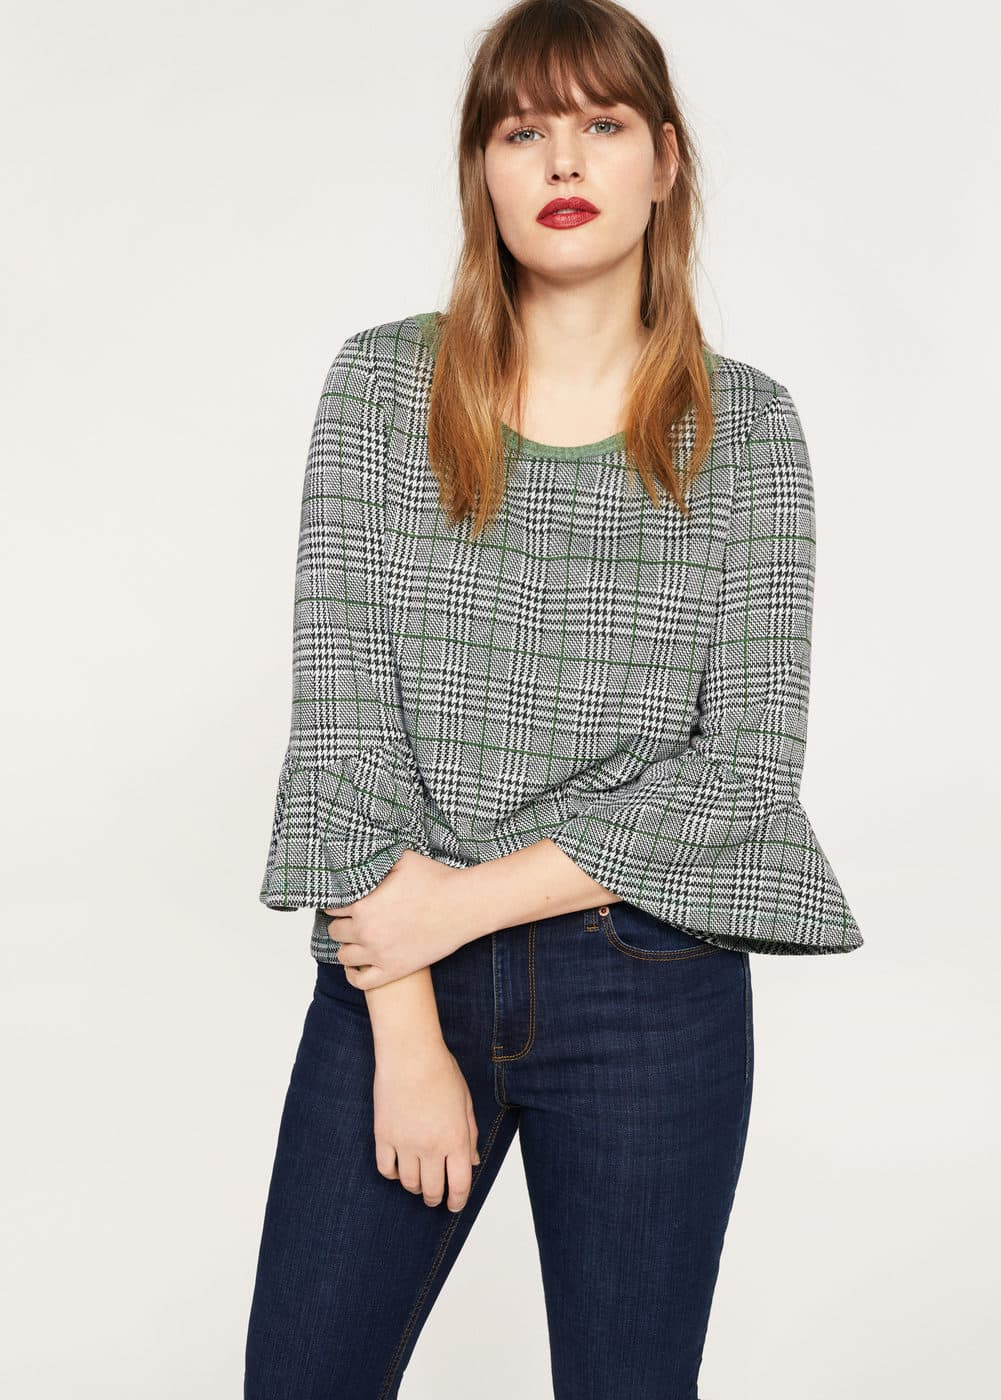 Prince of wales blouse | VIOLETA BY MANGO